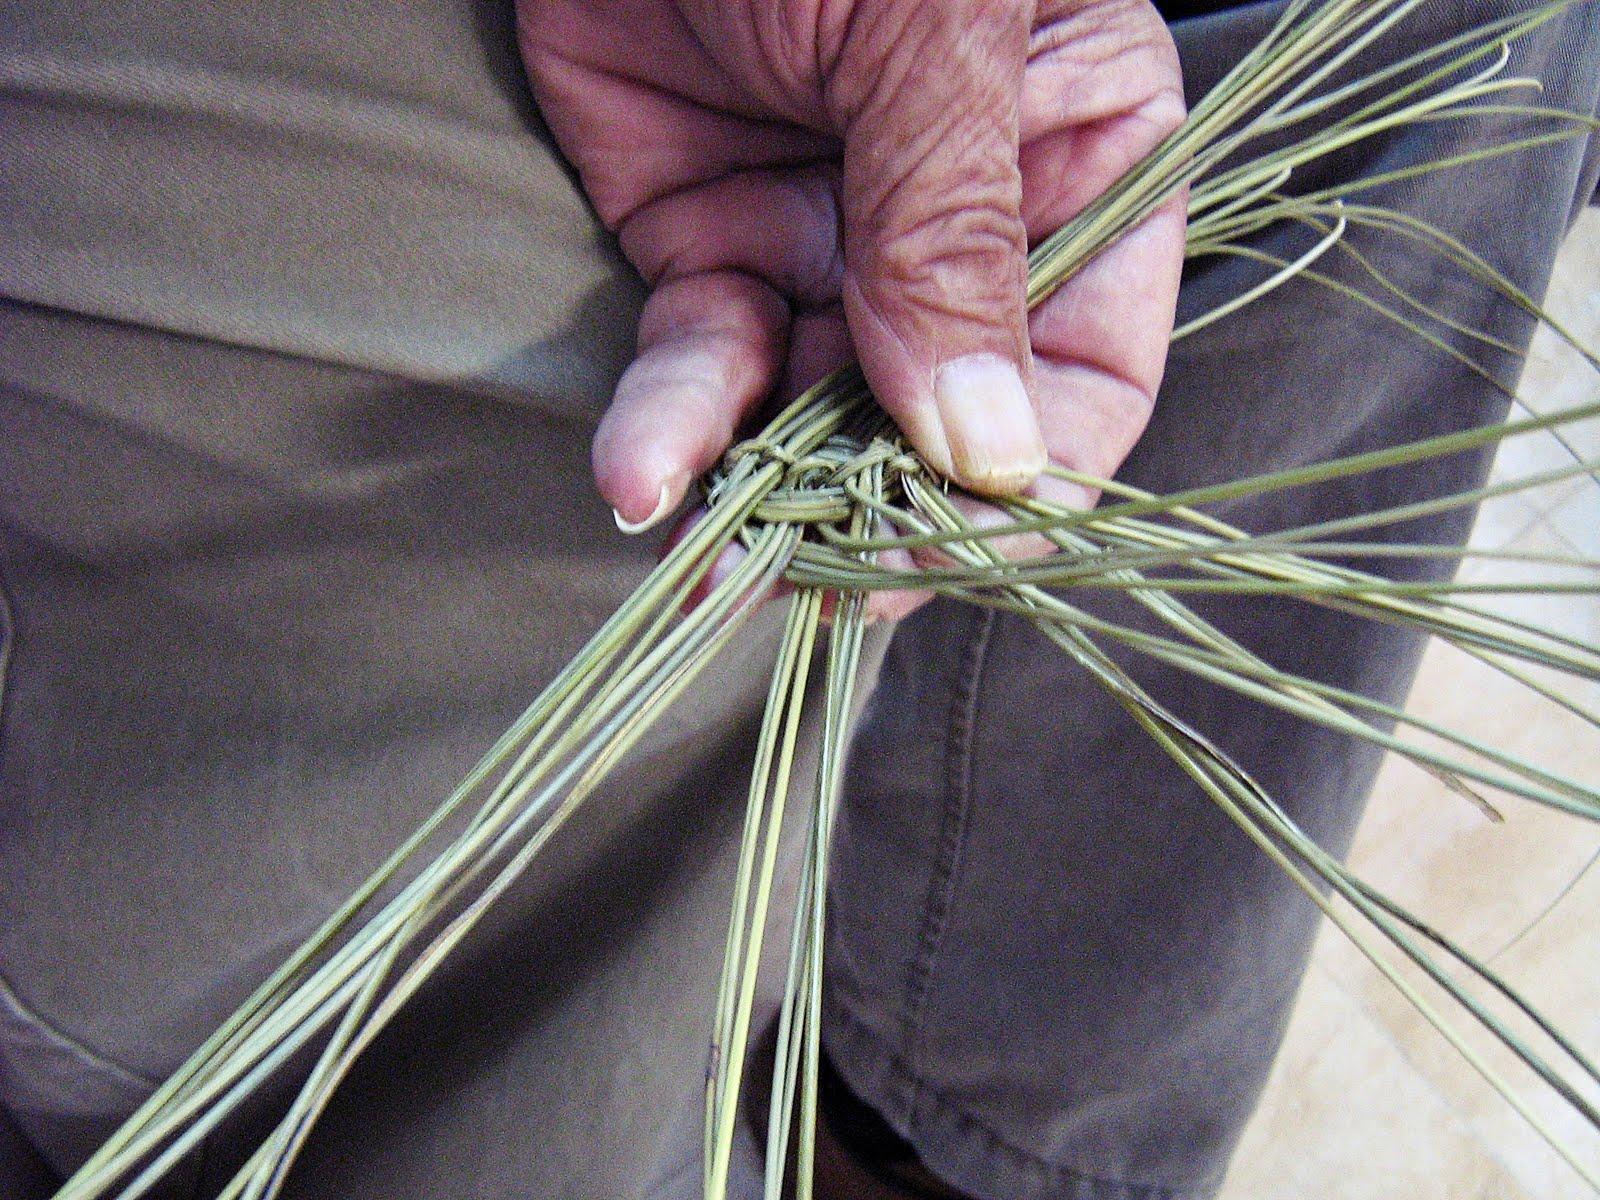 How To Make A Woven Grass Basket : My castle in spain weaving esparto grass